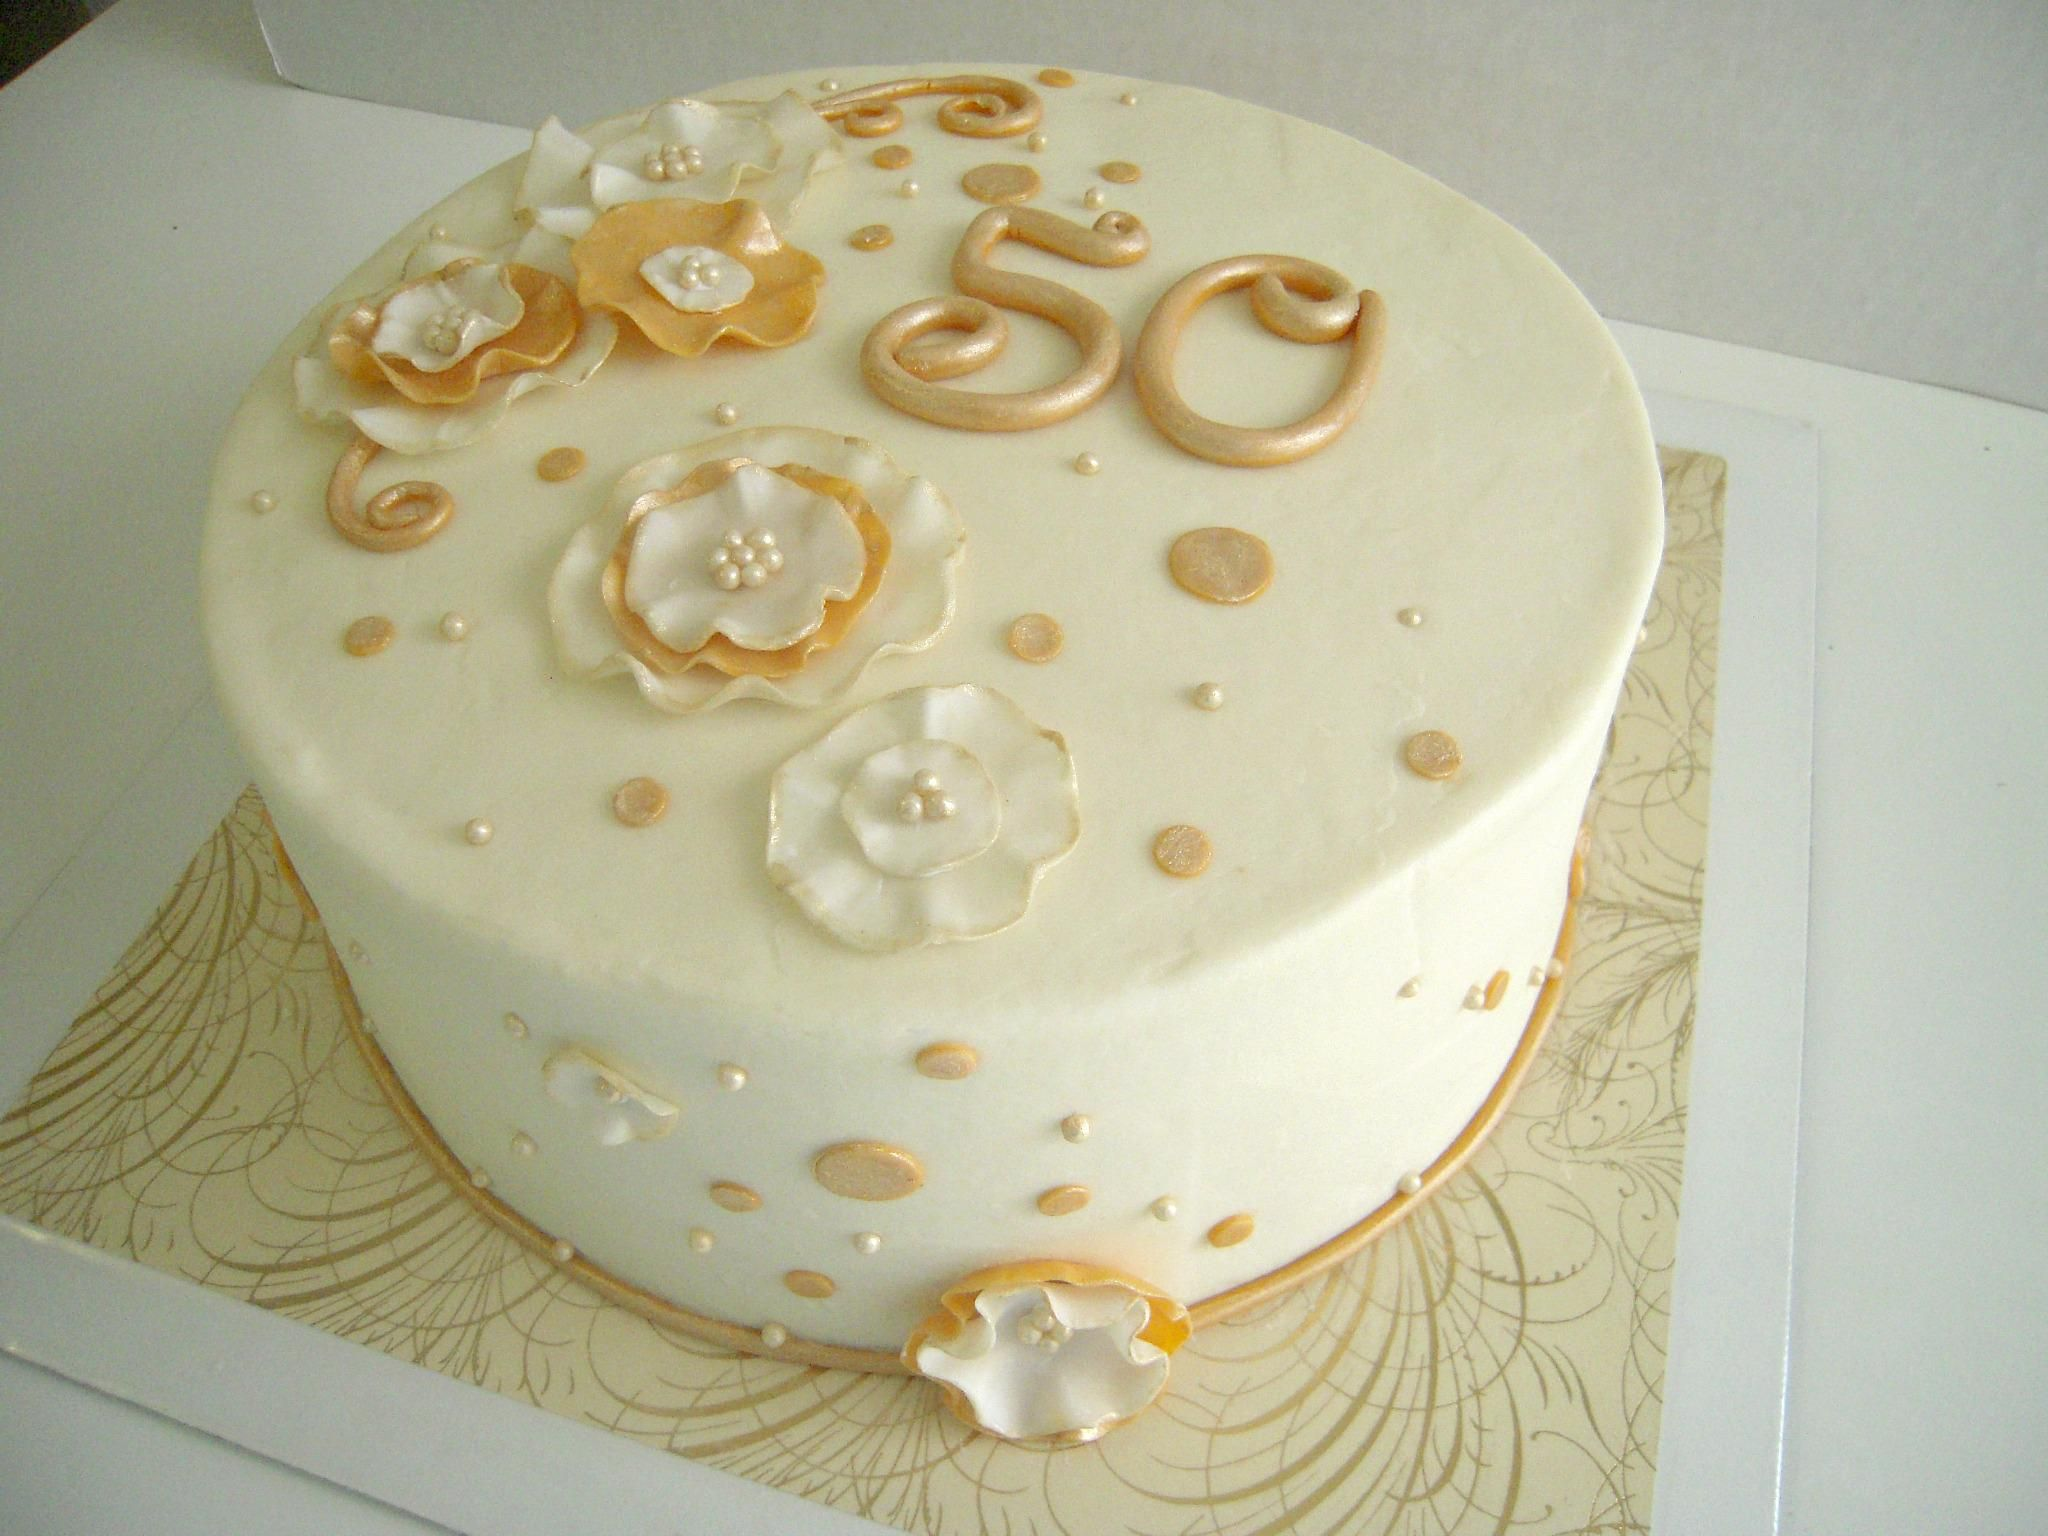 50th Wedding Anniversary Cake Ideas | Anniversary | Pinterest ...